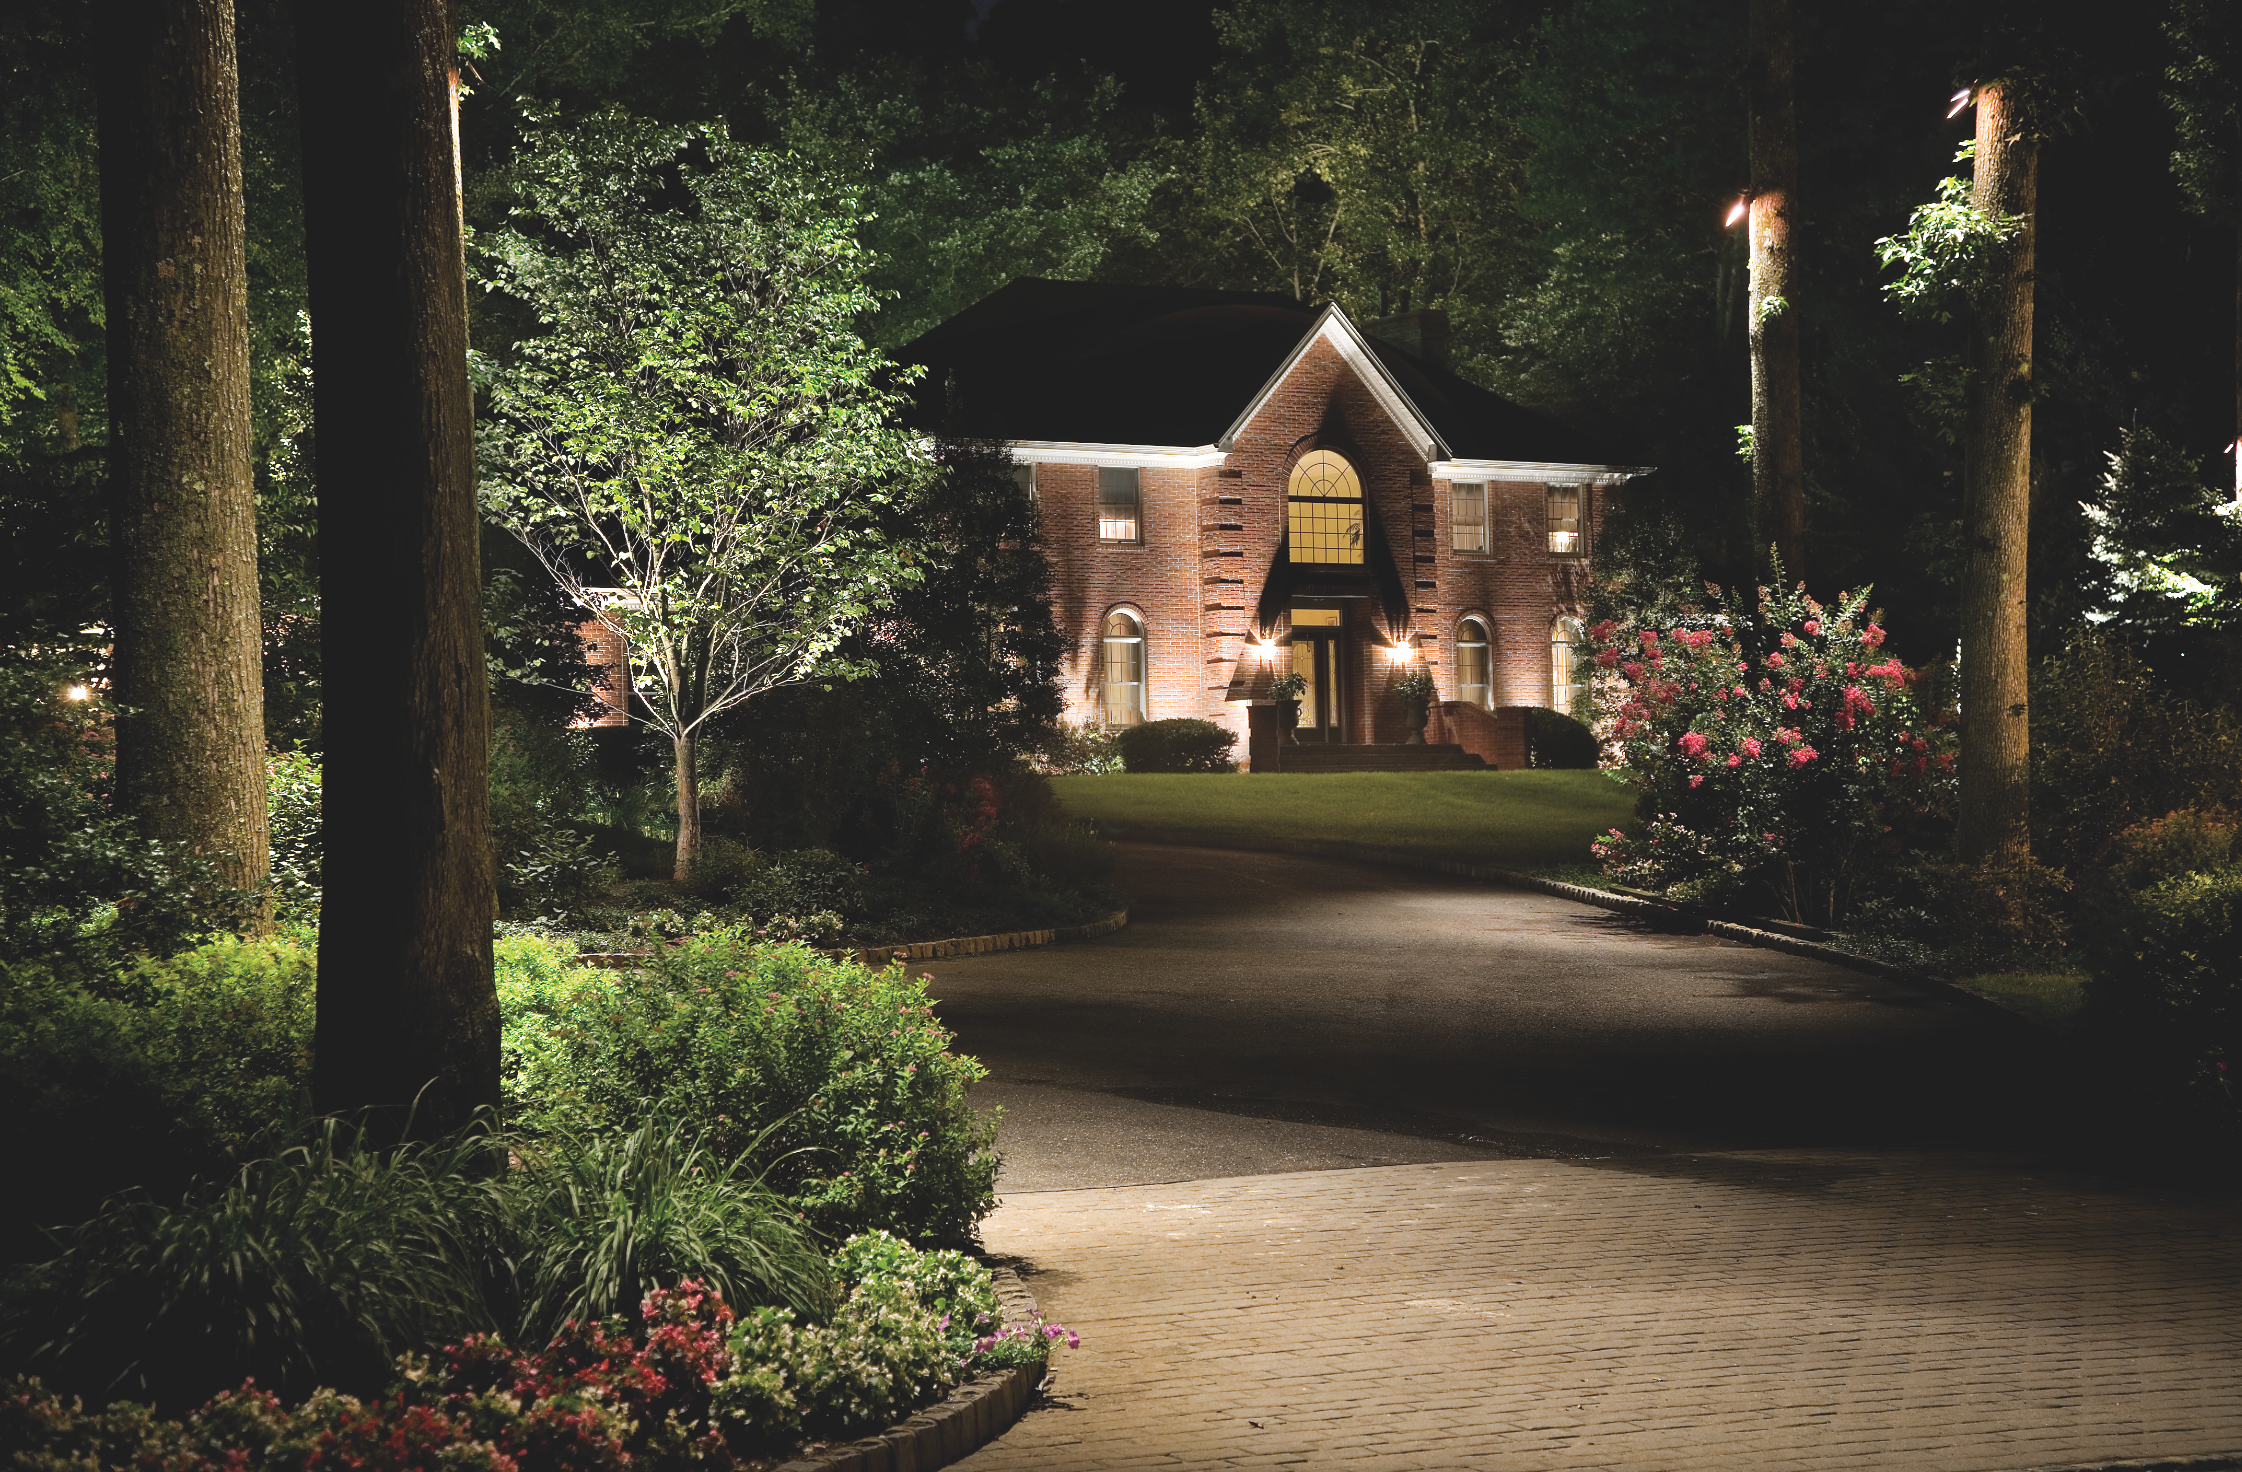 landscape installers orange county ny | Landscaping Dutchess County NY. Image Courtesy of Cast Lighting